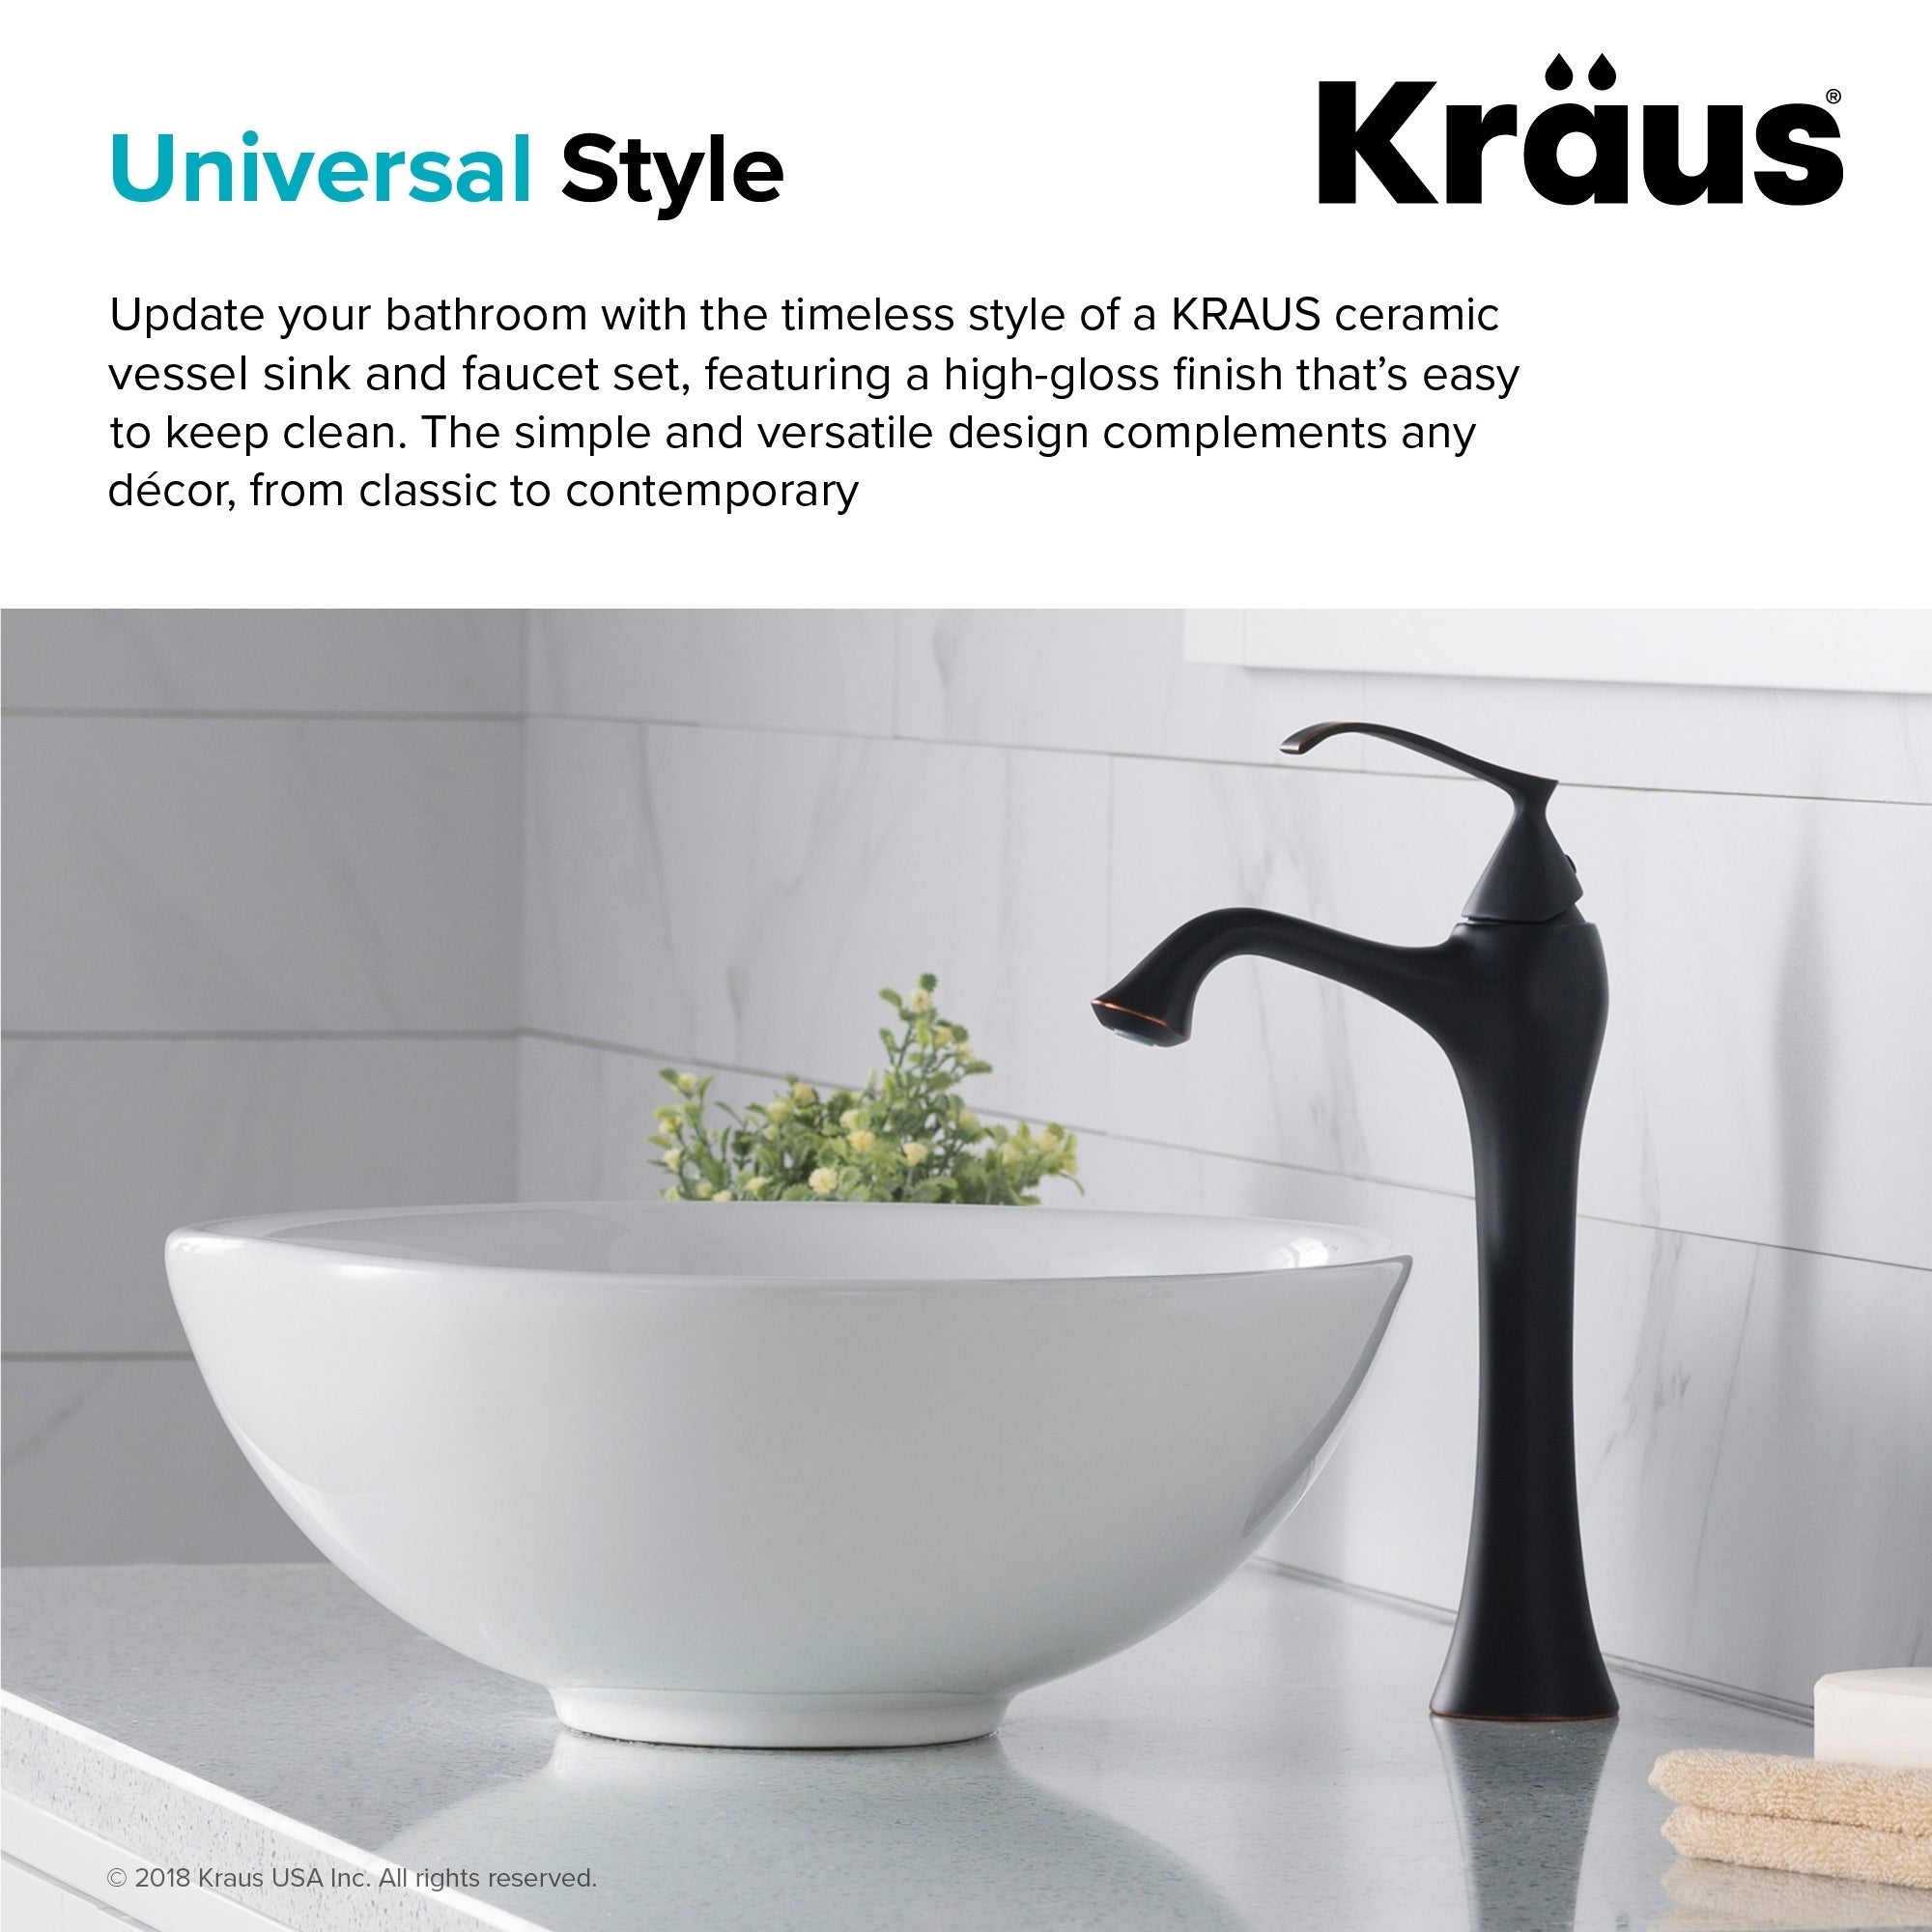 Kraus 3 In 1 Bathroom Set White Ceramic Round Vessel Sink Ventus Single Hole Faucet And Pop Up Drain Oil Rubbed Bronze